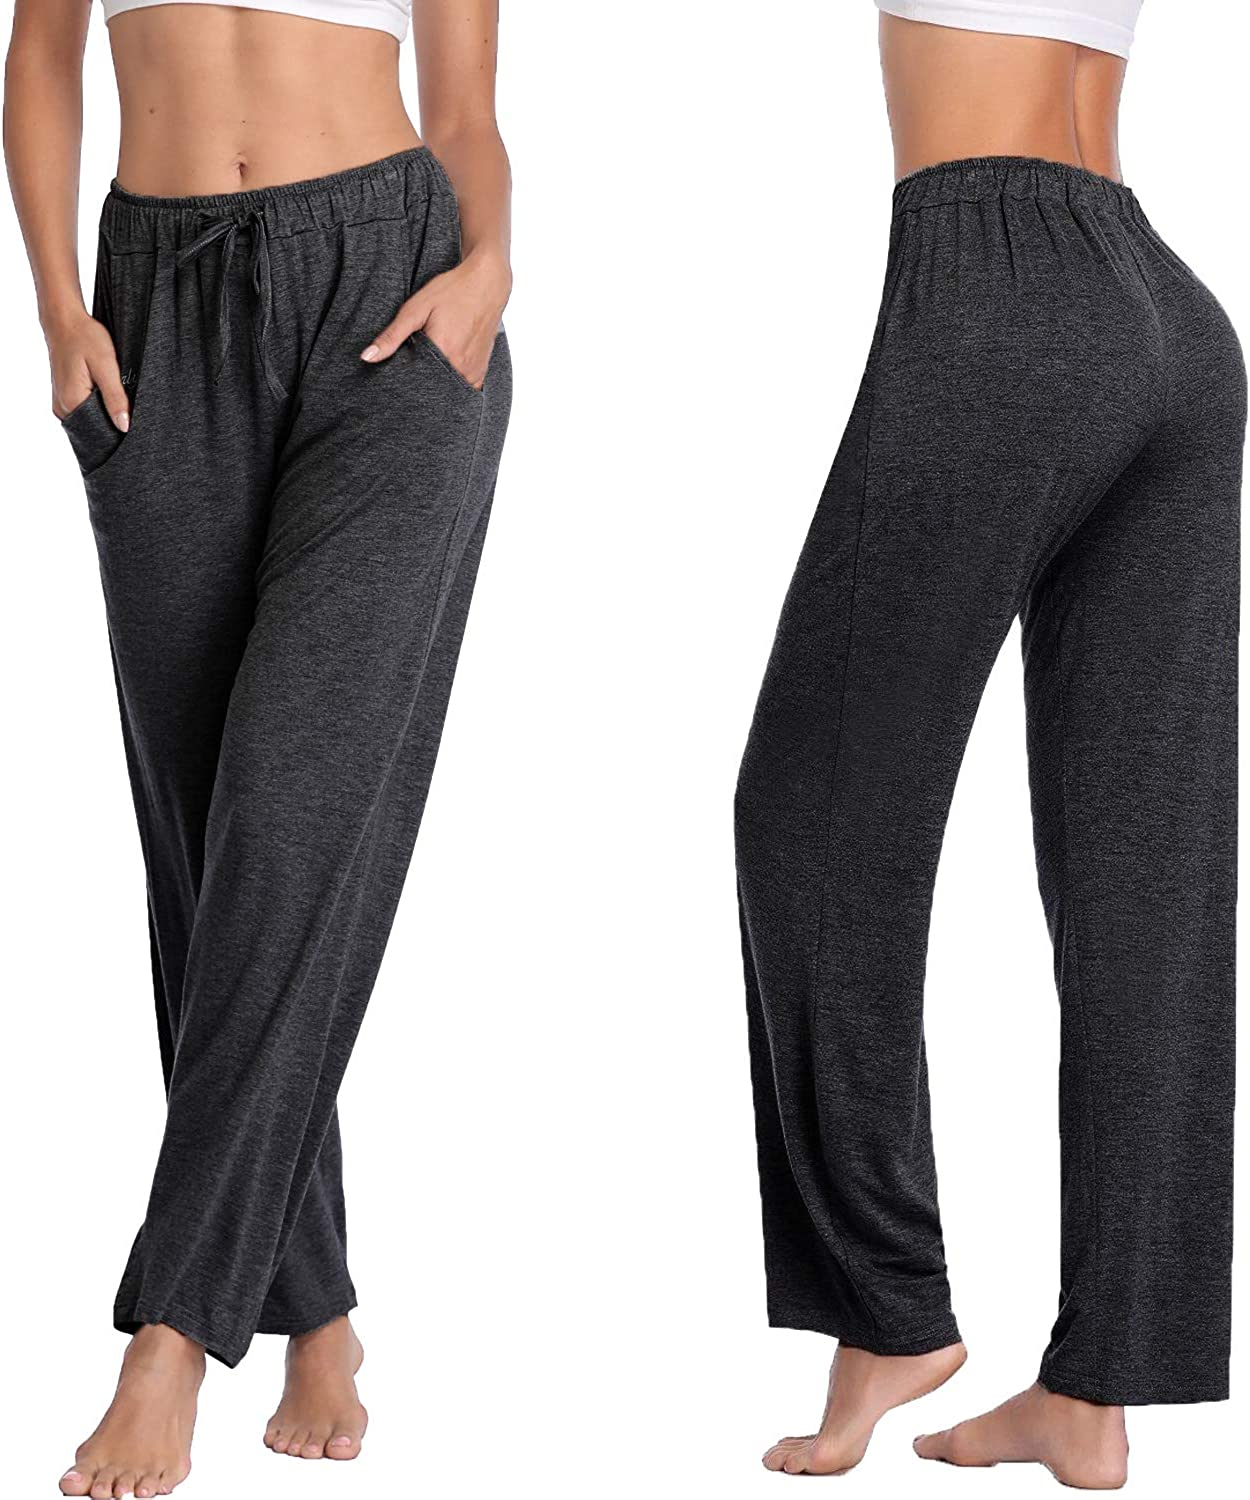 The Best Home Wear Pants For Woman